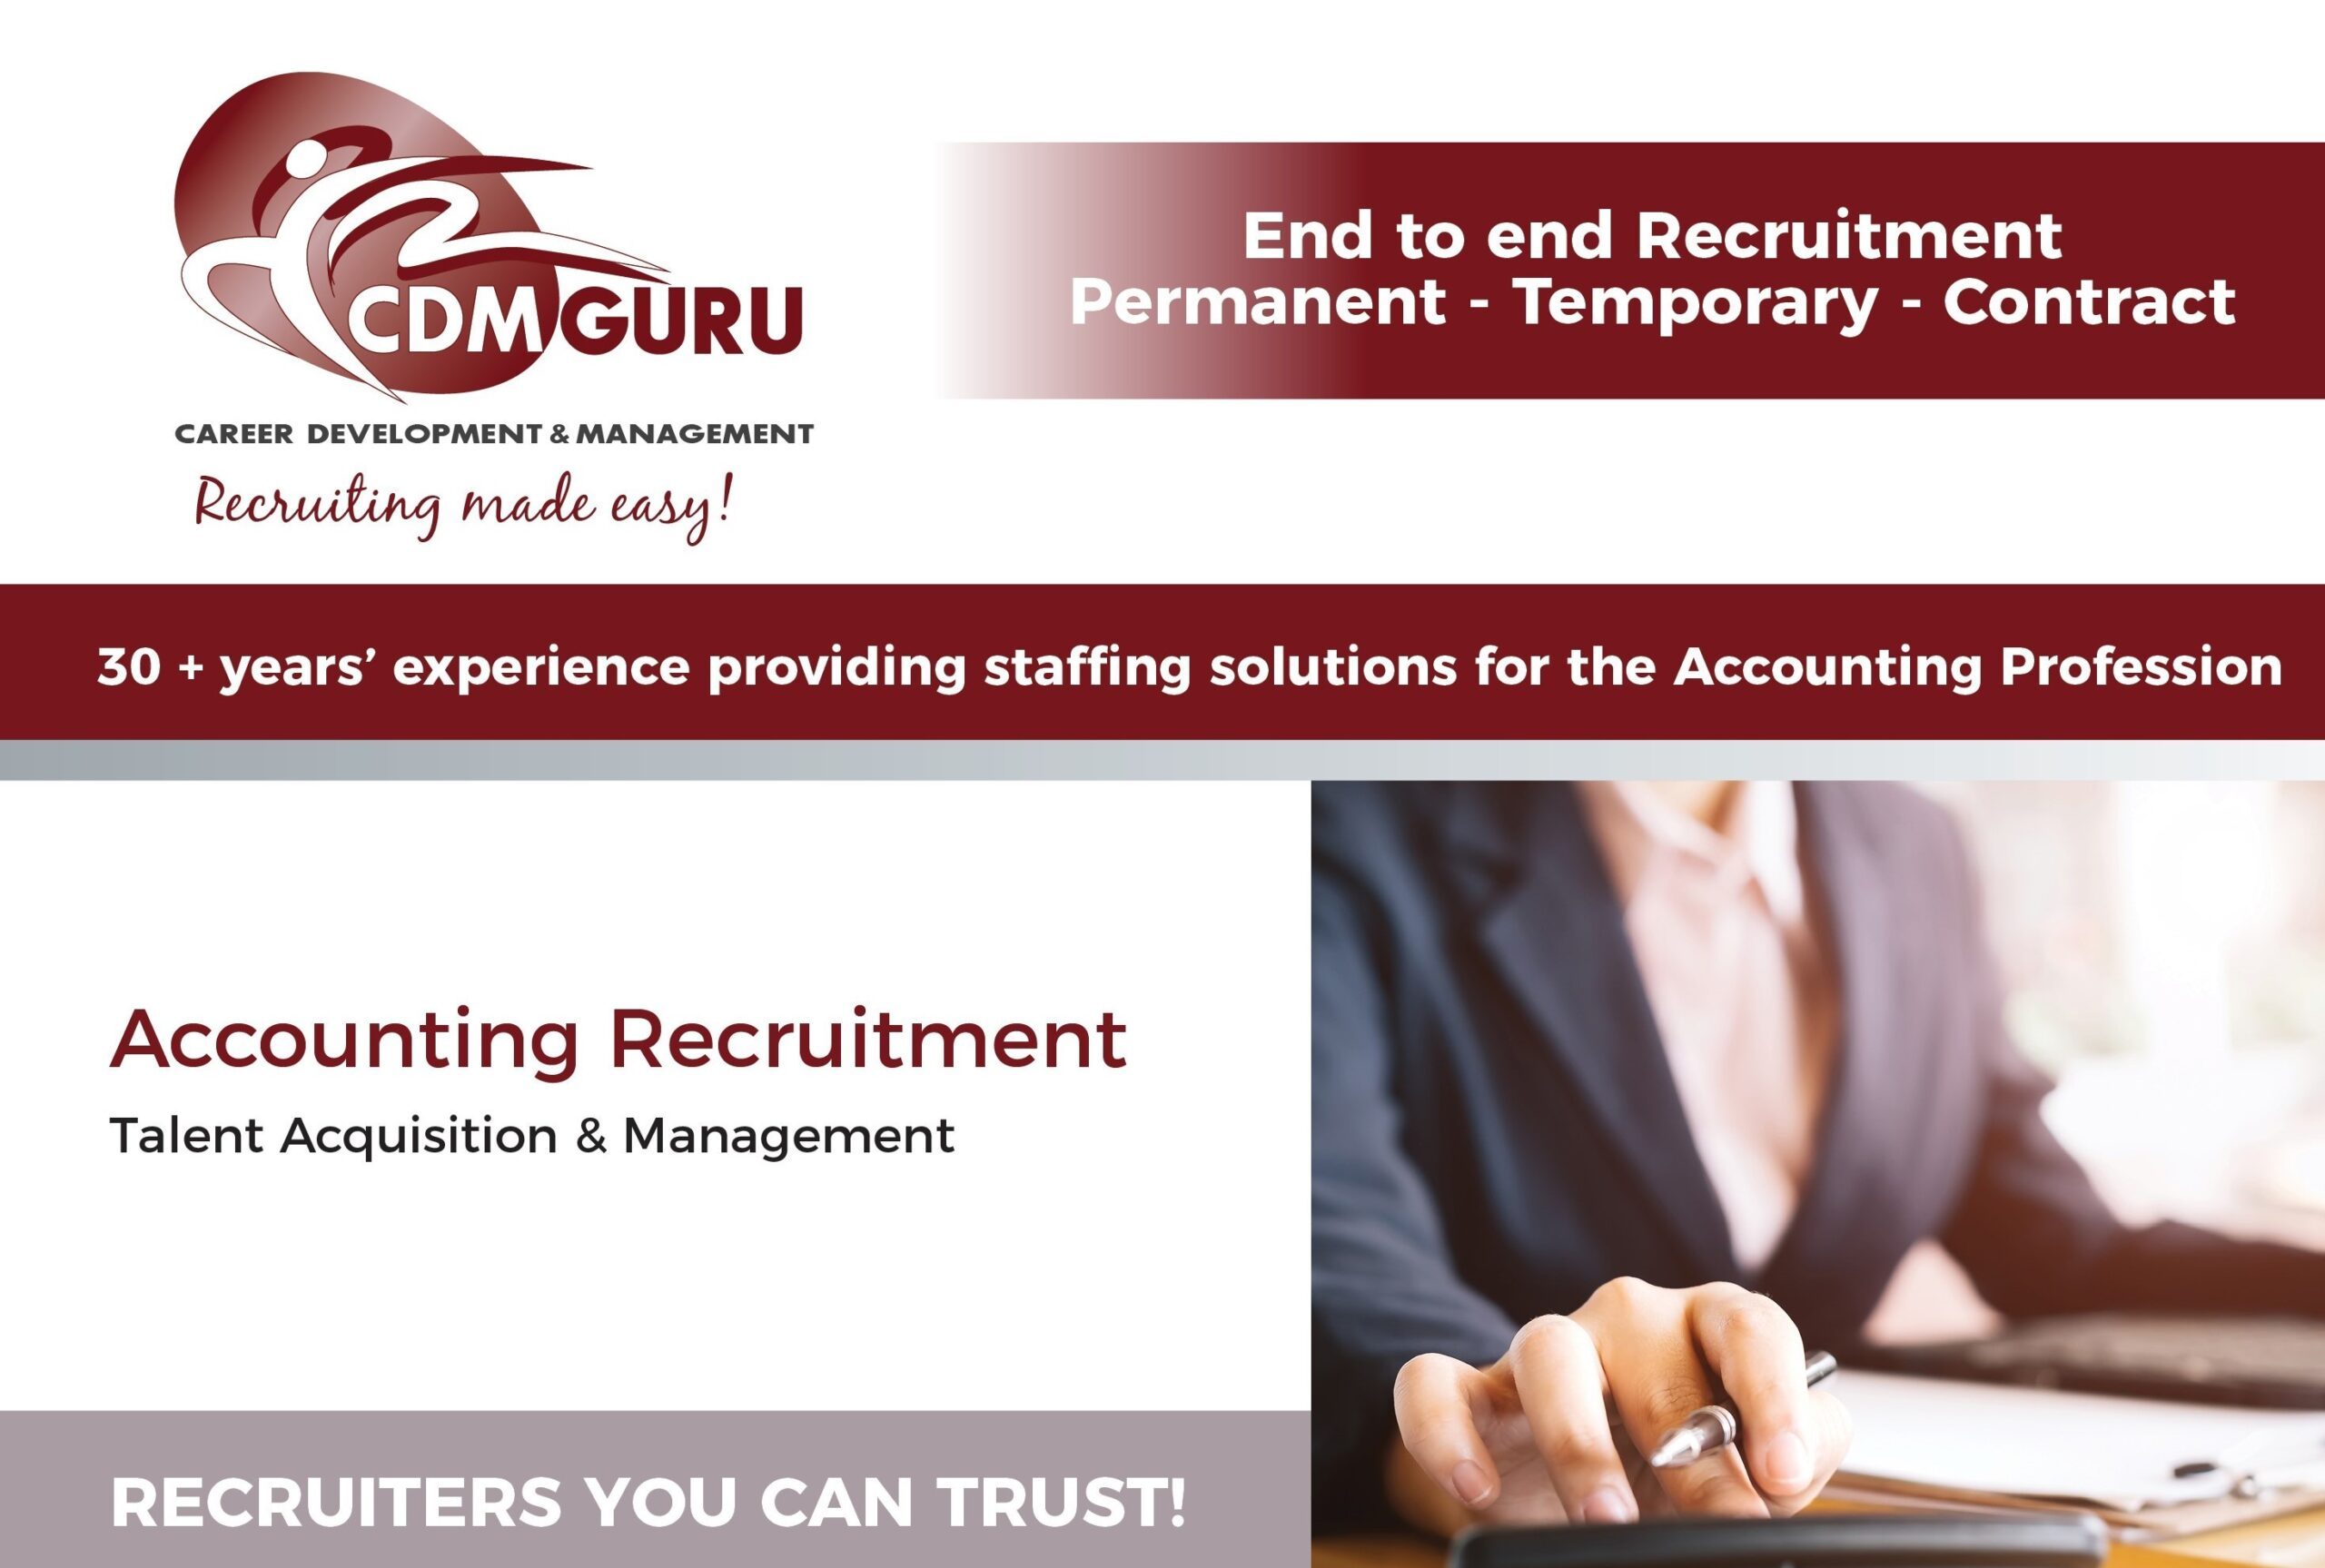 CDMGuru Ad - Accounting